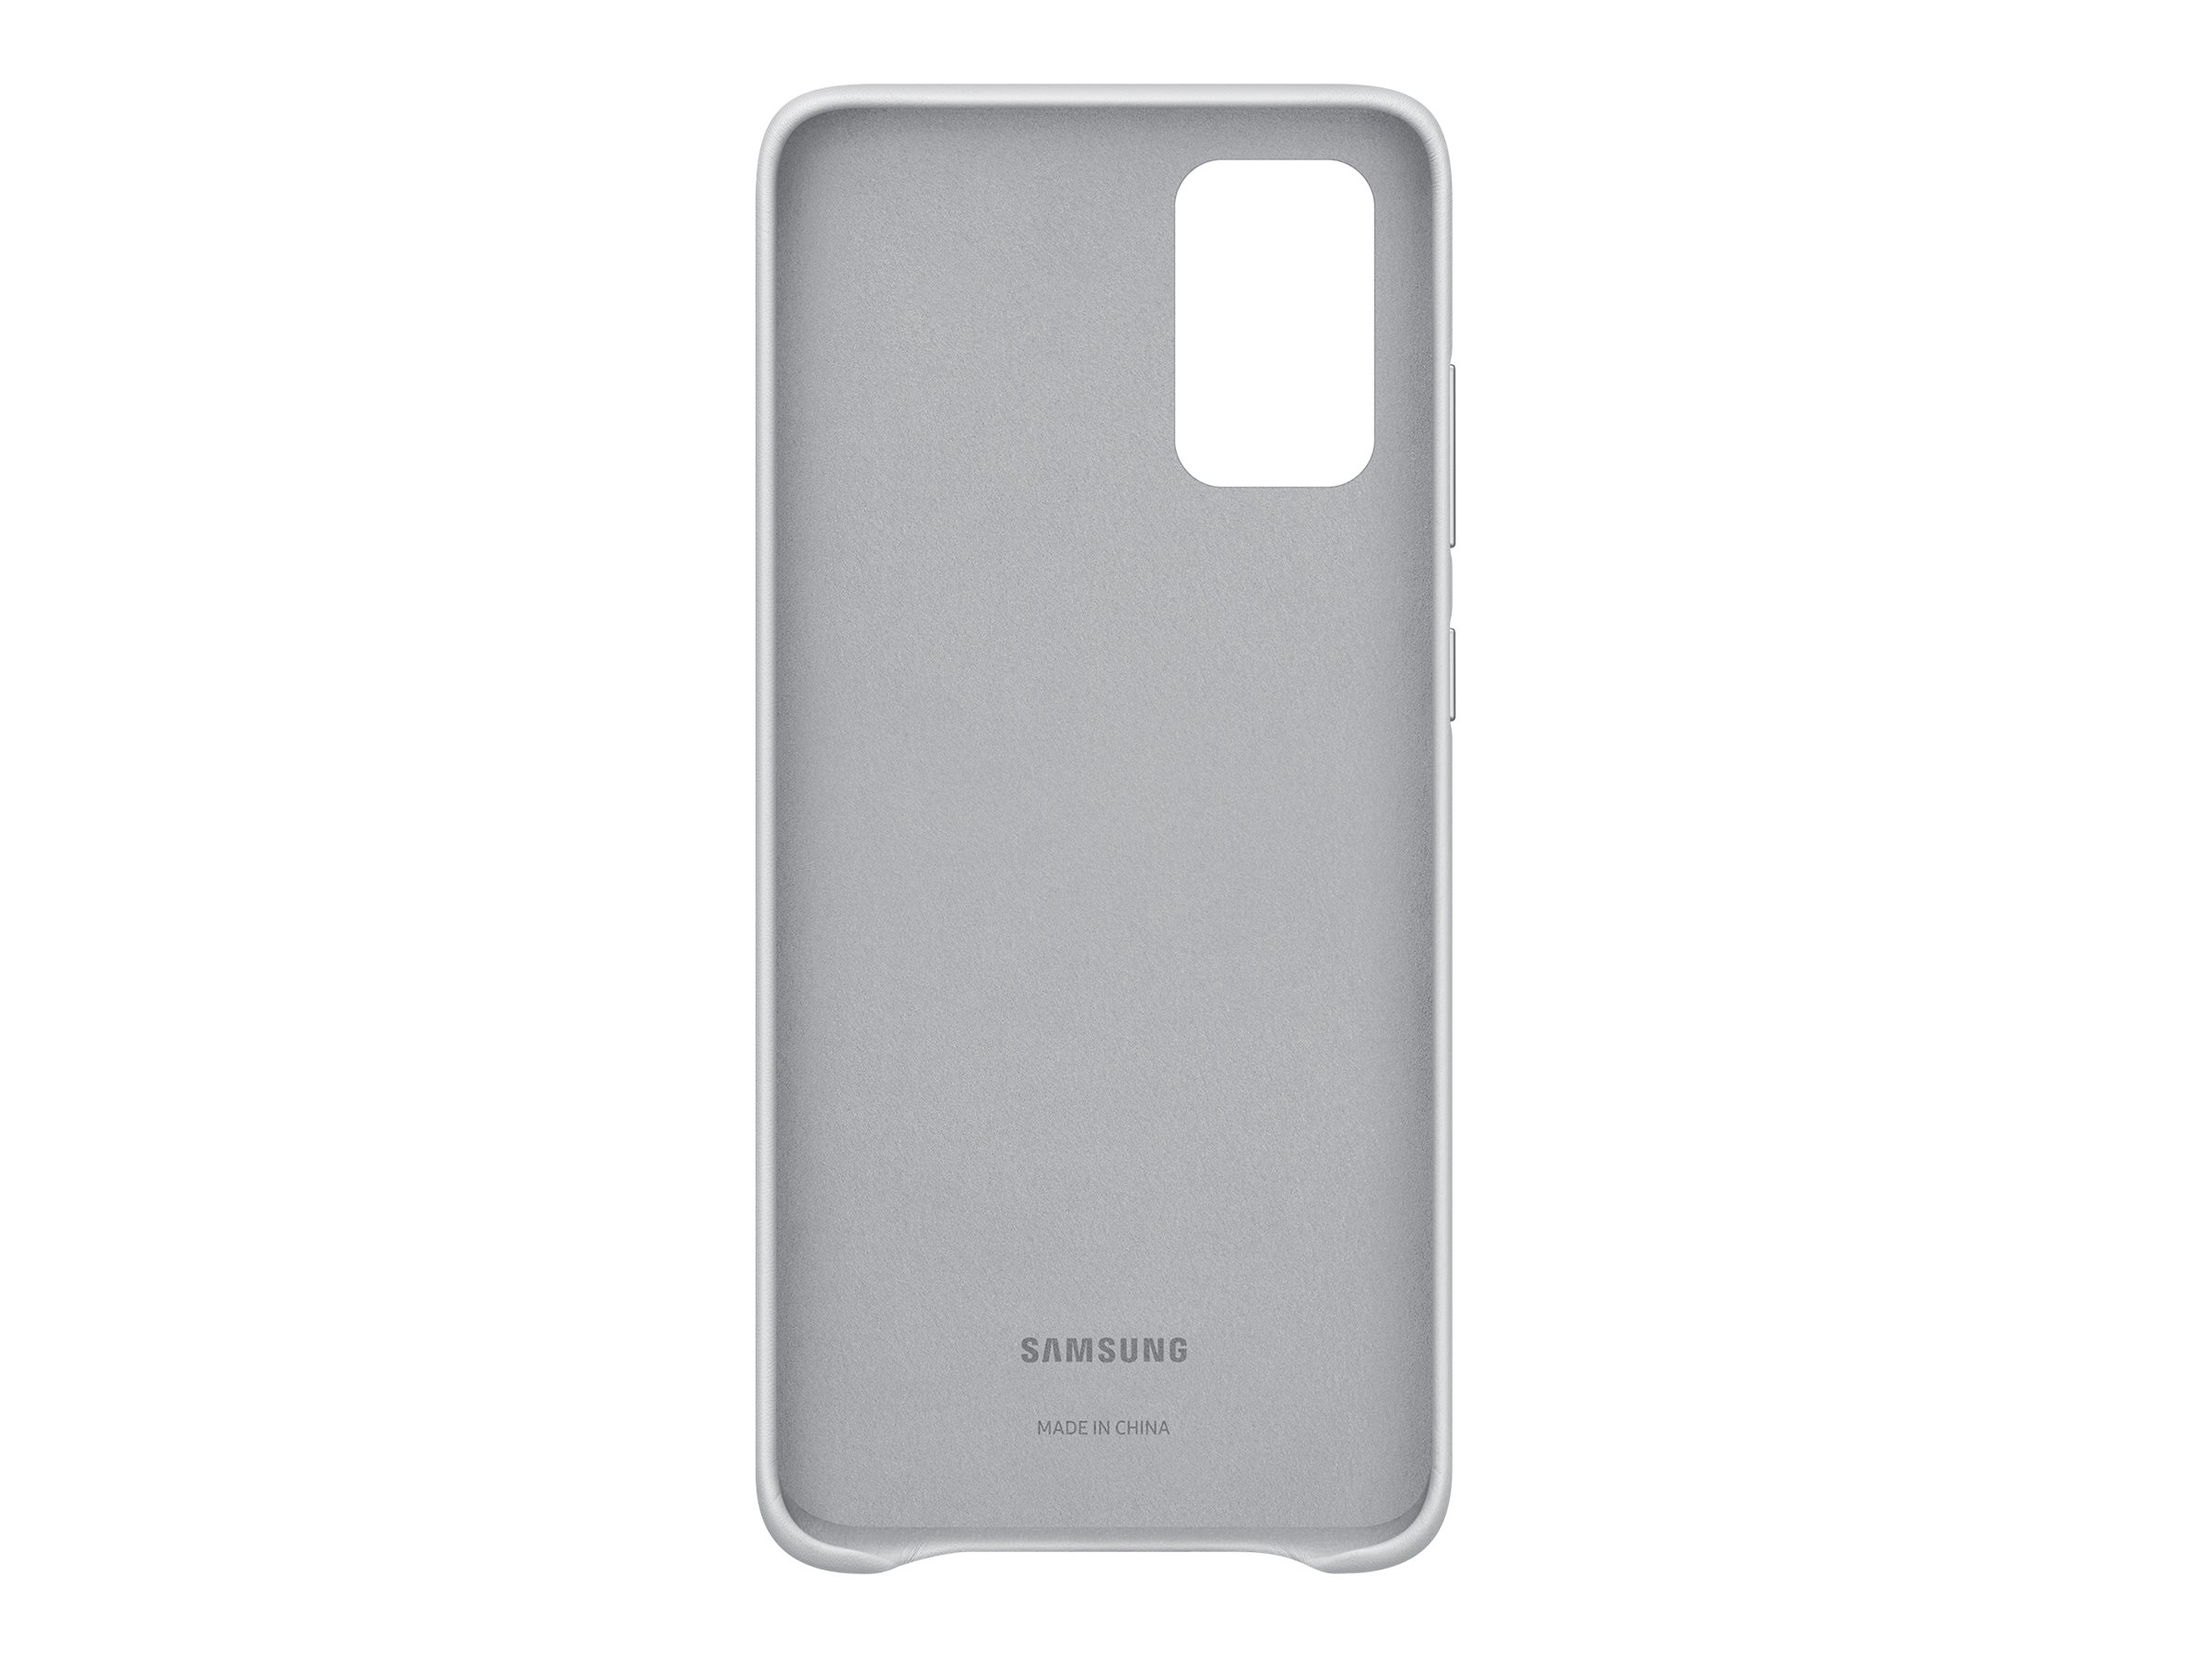 Samsung Leather Cover EF-VG985 - back cover for cell phone